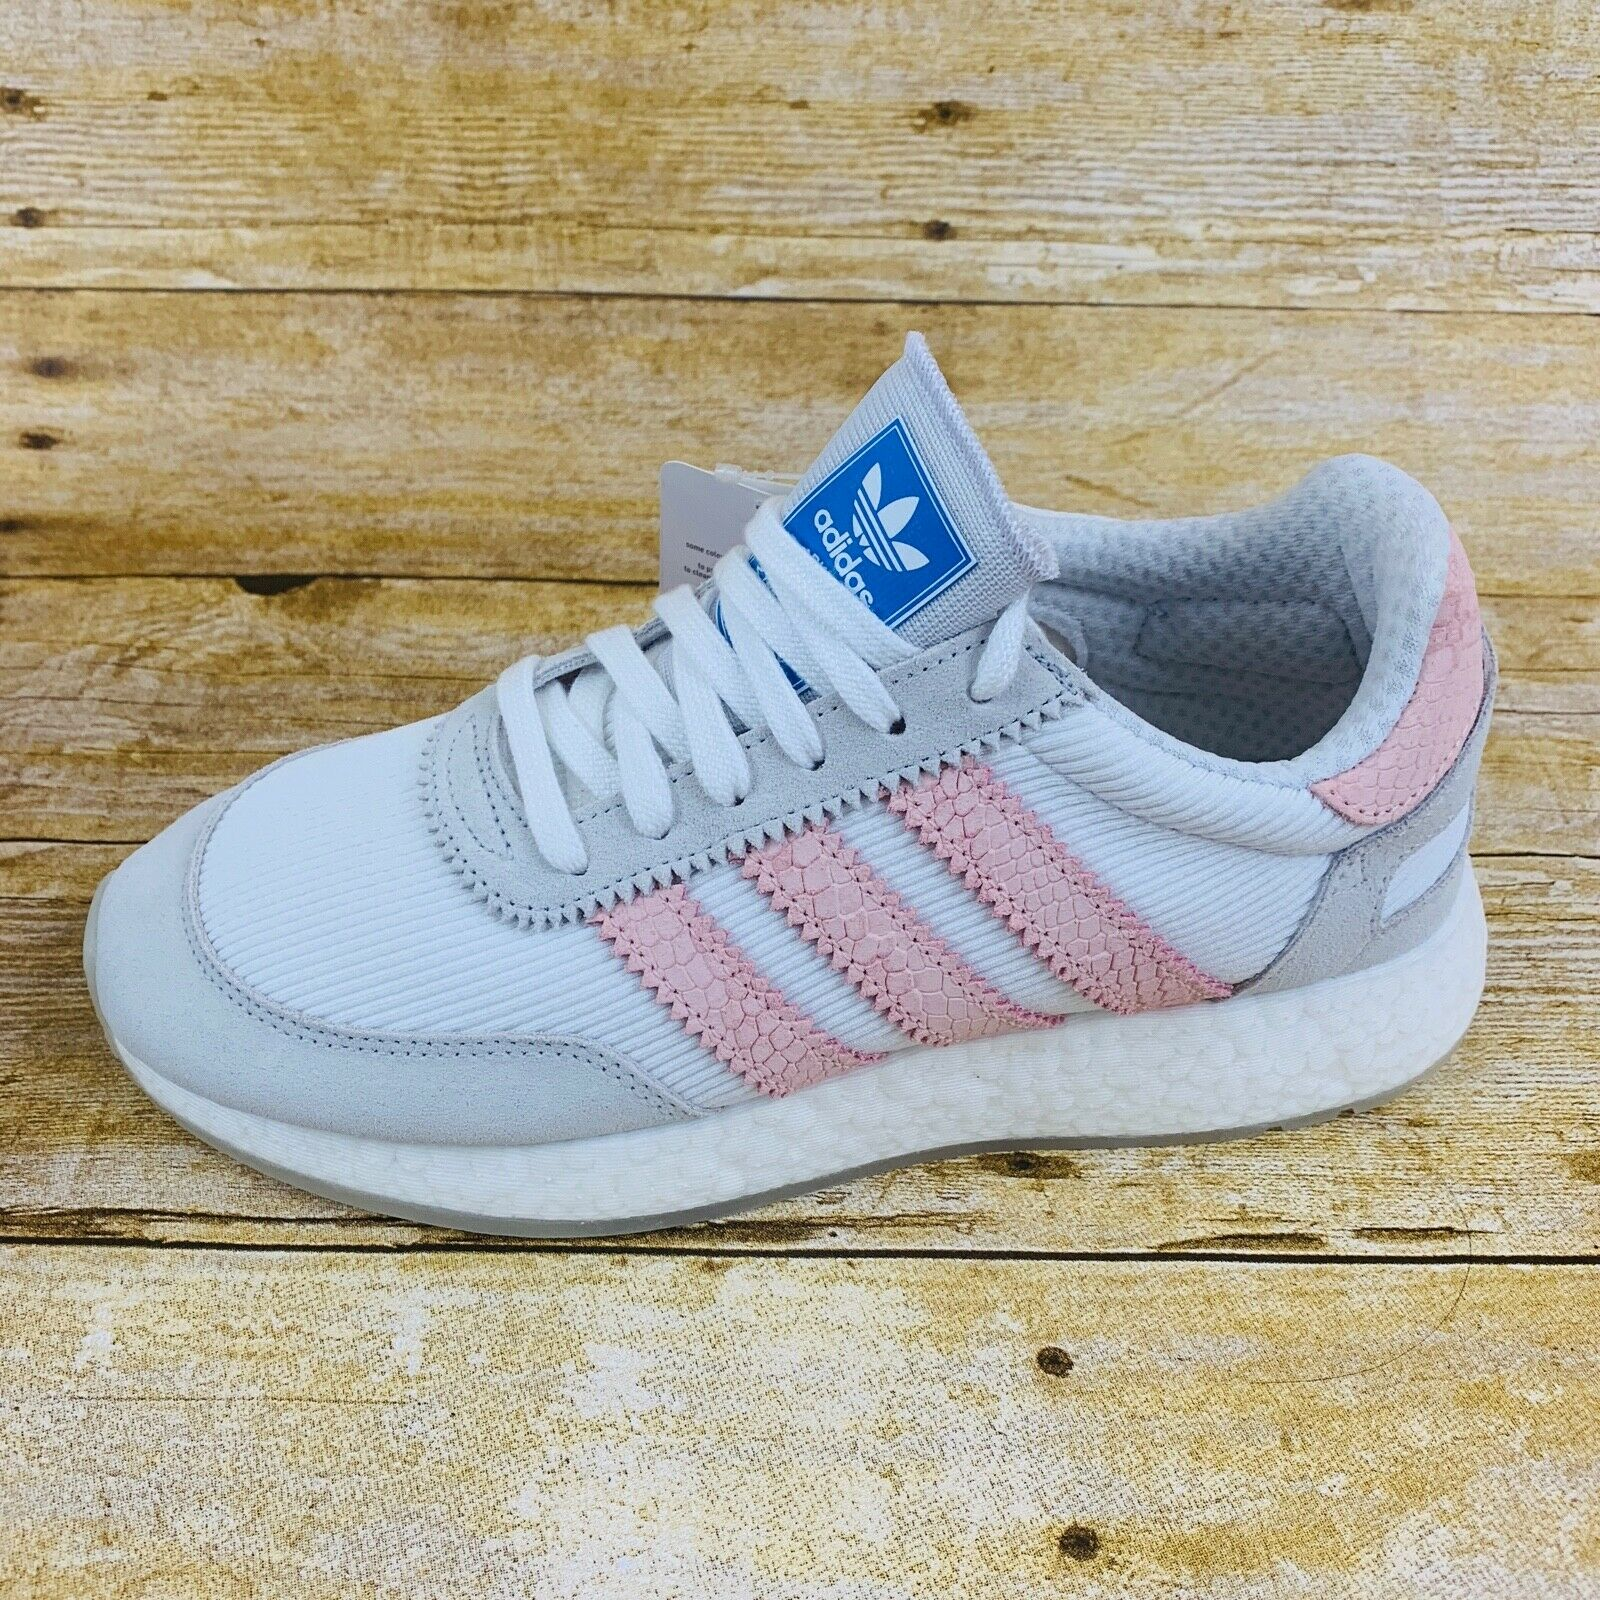 NEW WOMEN'S ADIDAS ORIGINALS I-5923 INIKI BOOST SHOES [D97348]  WHITE  ICEY PINK